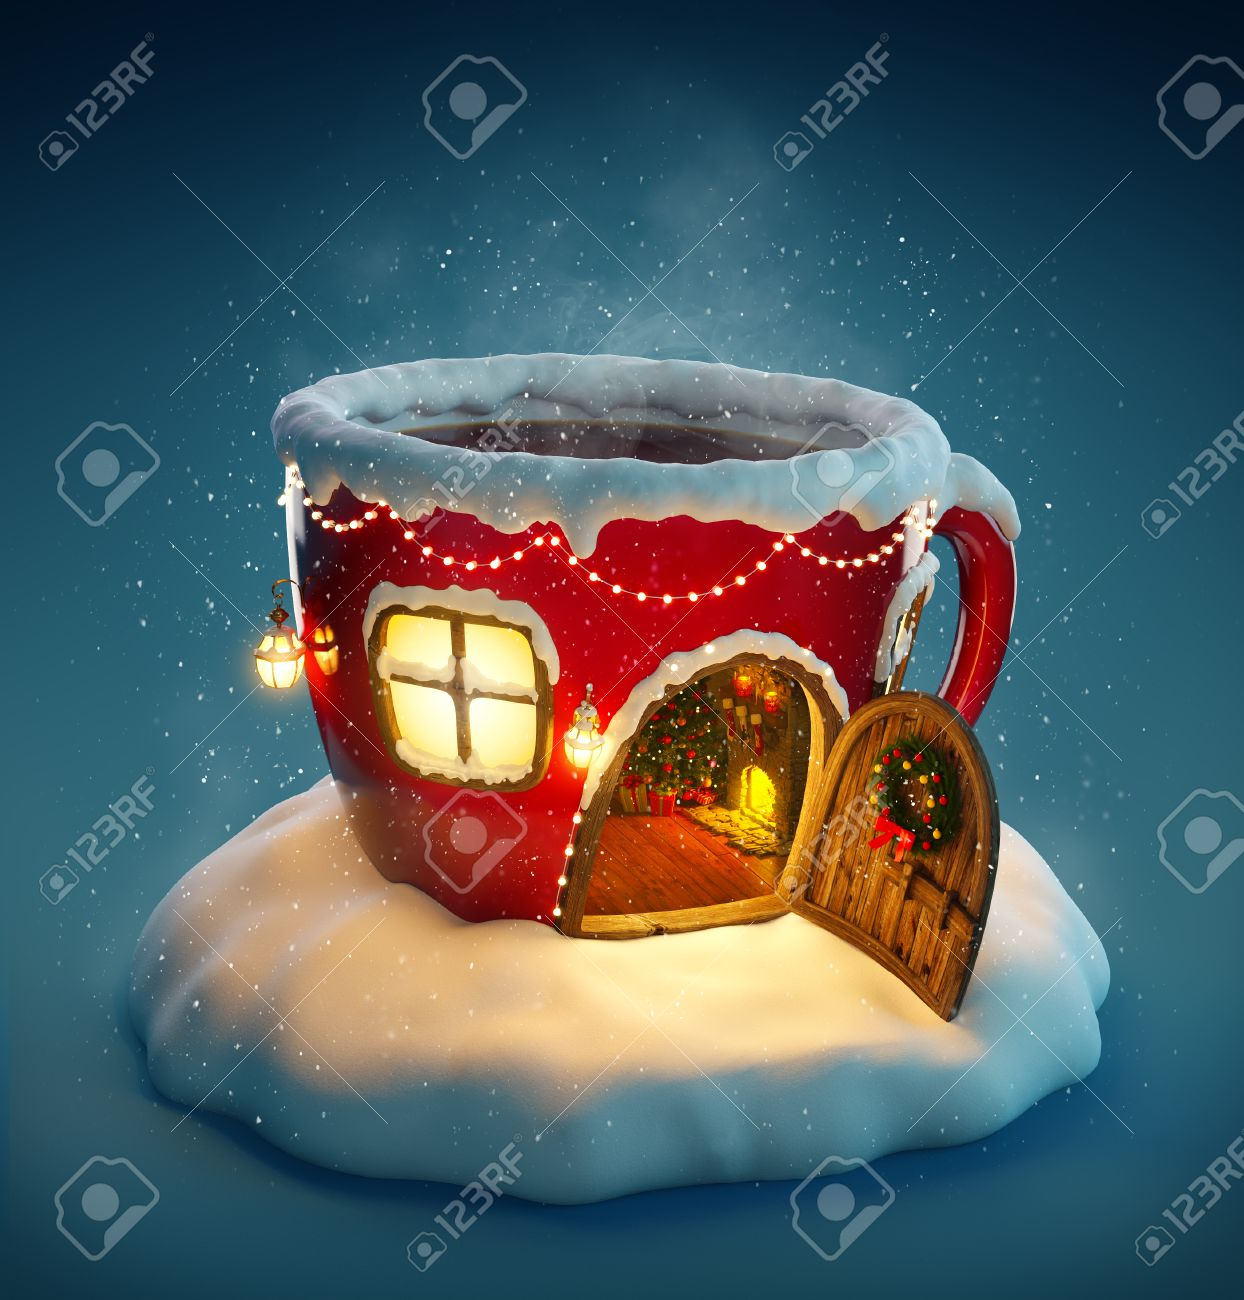 Amazing fairy house decorated at christmas in shape of tea cup with opened door and fireplace inside. Unusual christmas illustration. Stock Illustration - 46798619